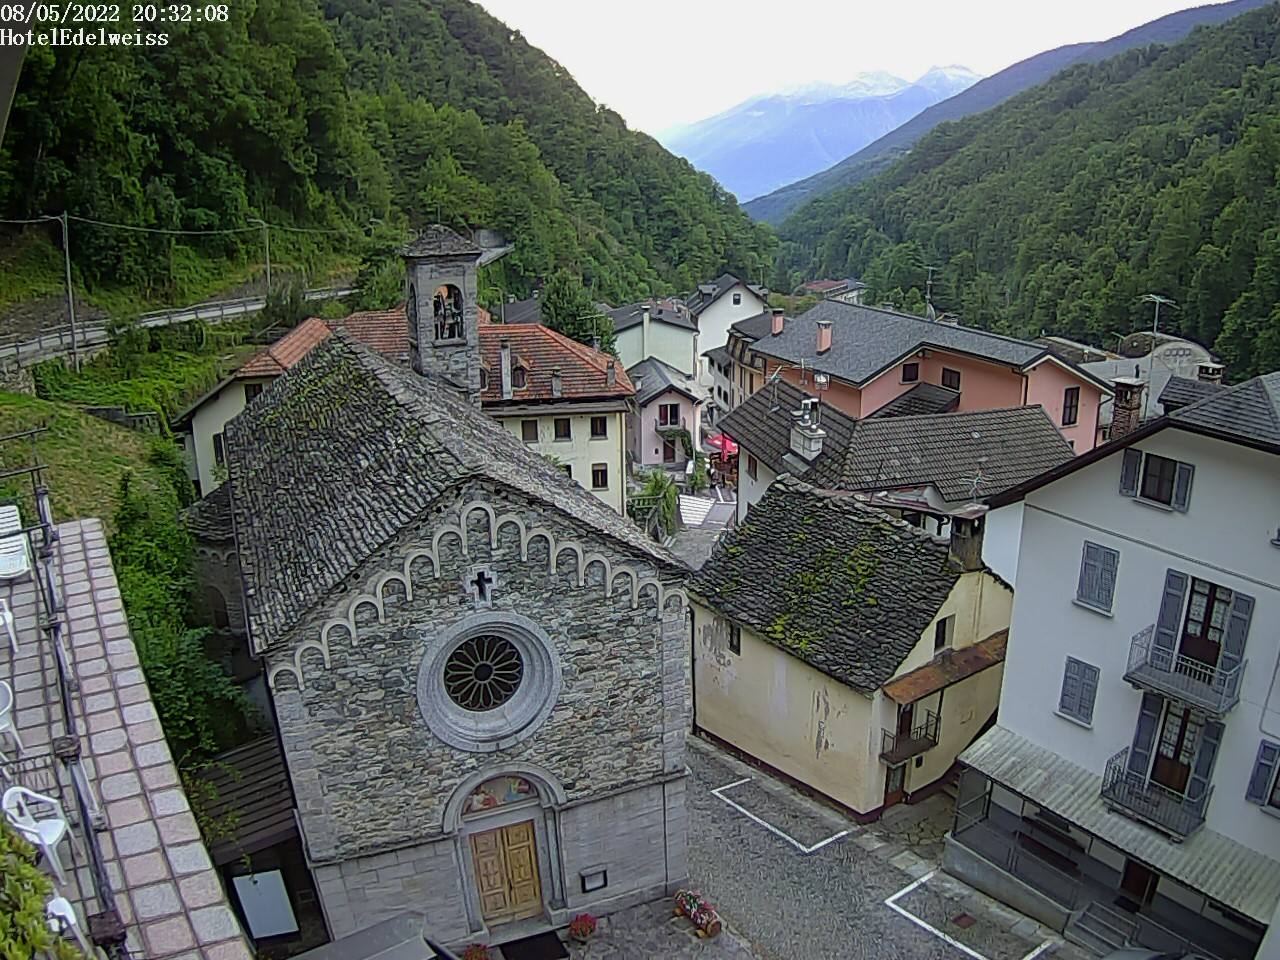 Webcam Bognanco Fonti